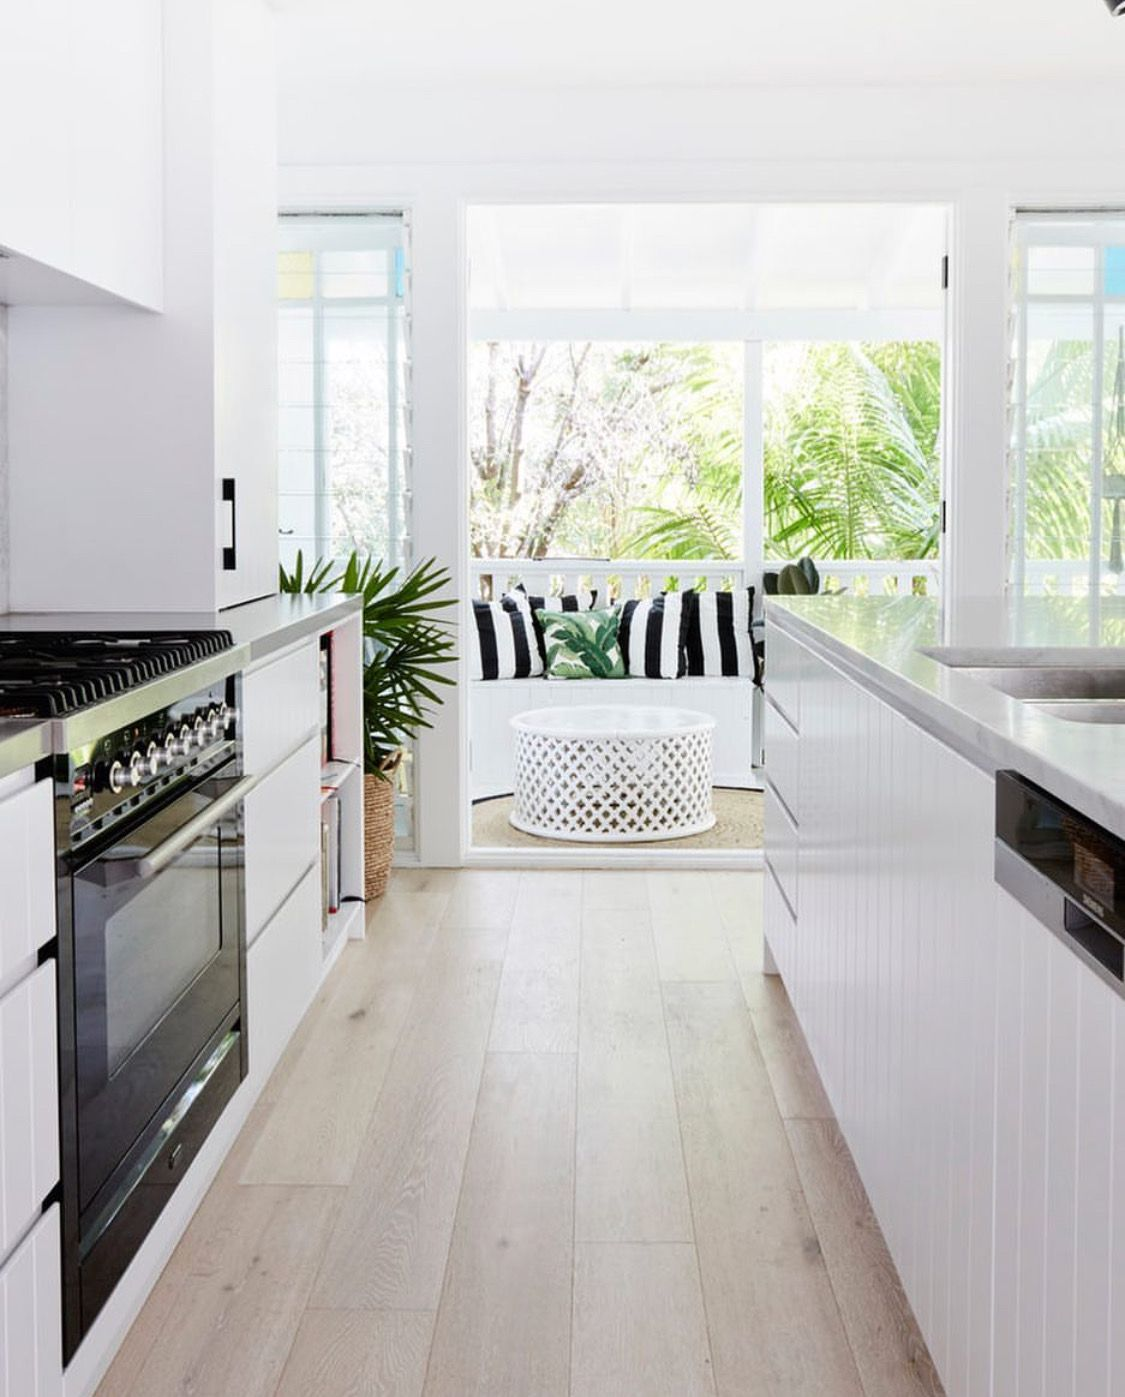 White Kitchen Cabinets Light Floor: Kitchen Perfection By Sally Rhys Jones .